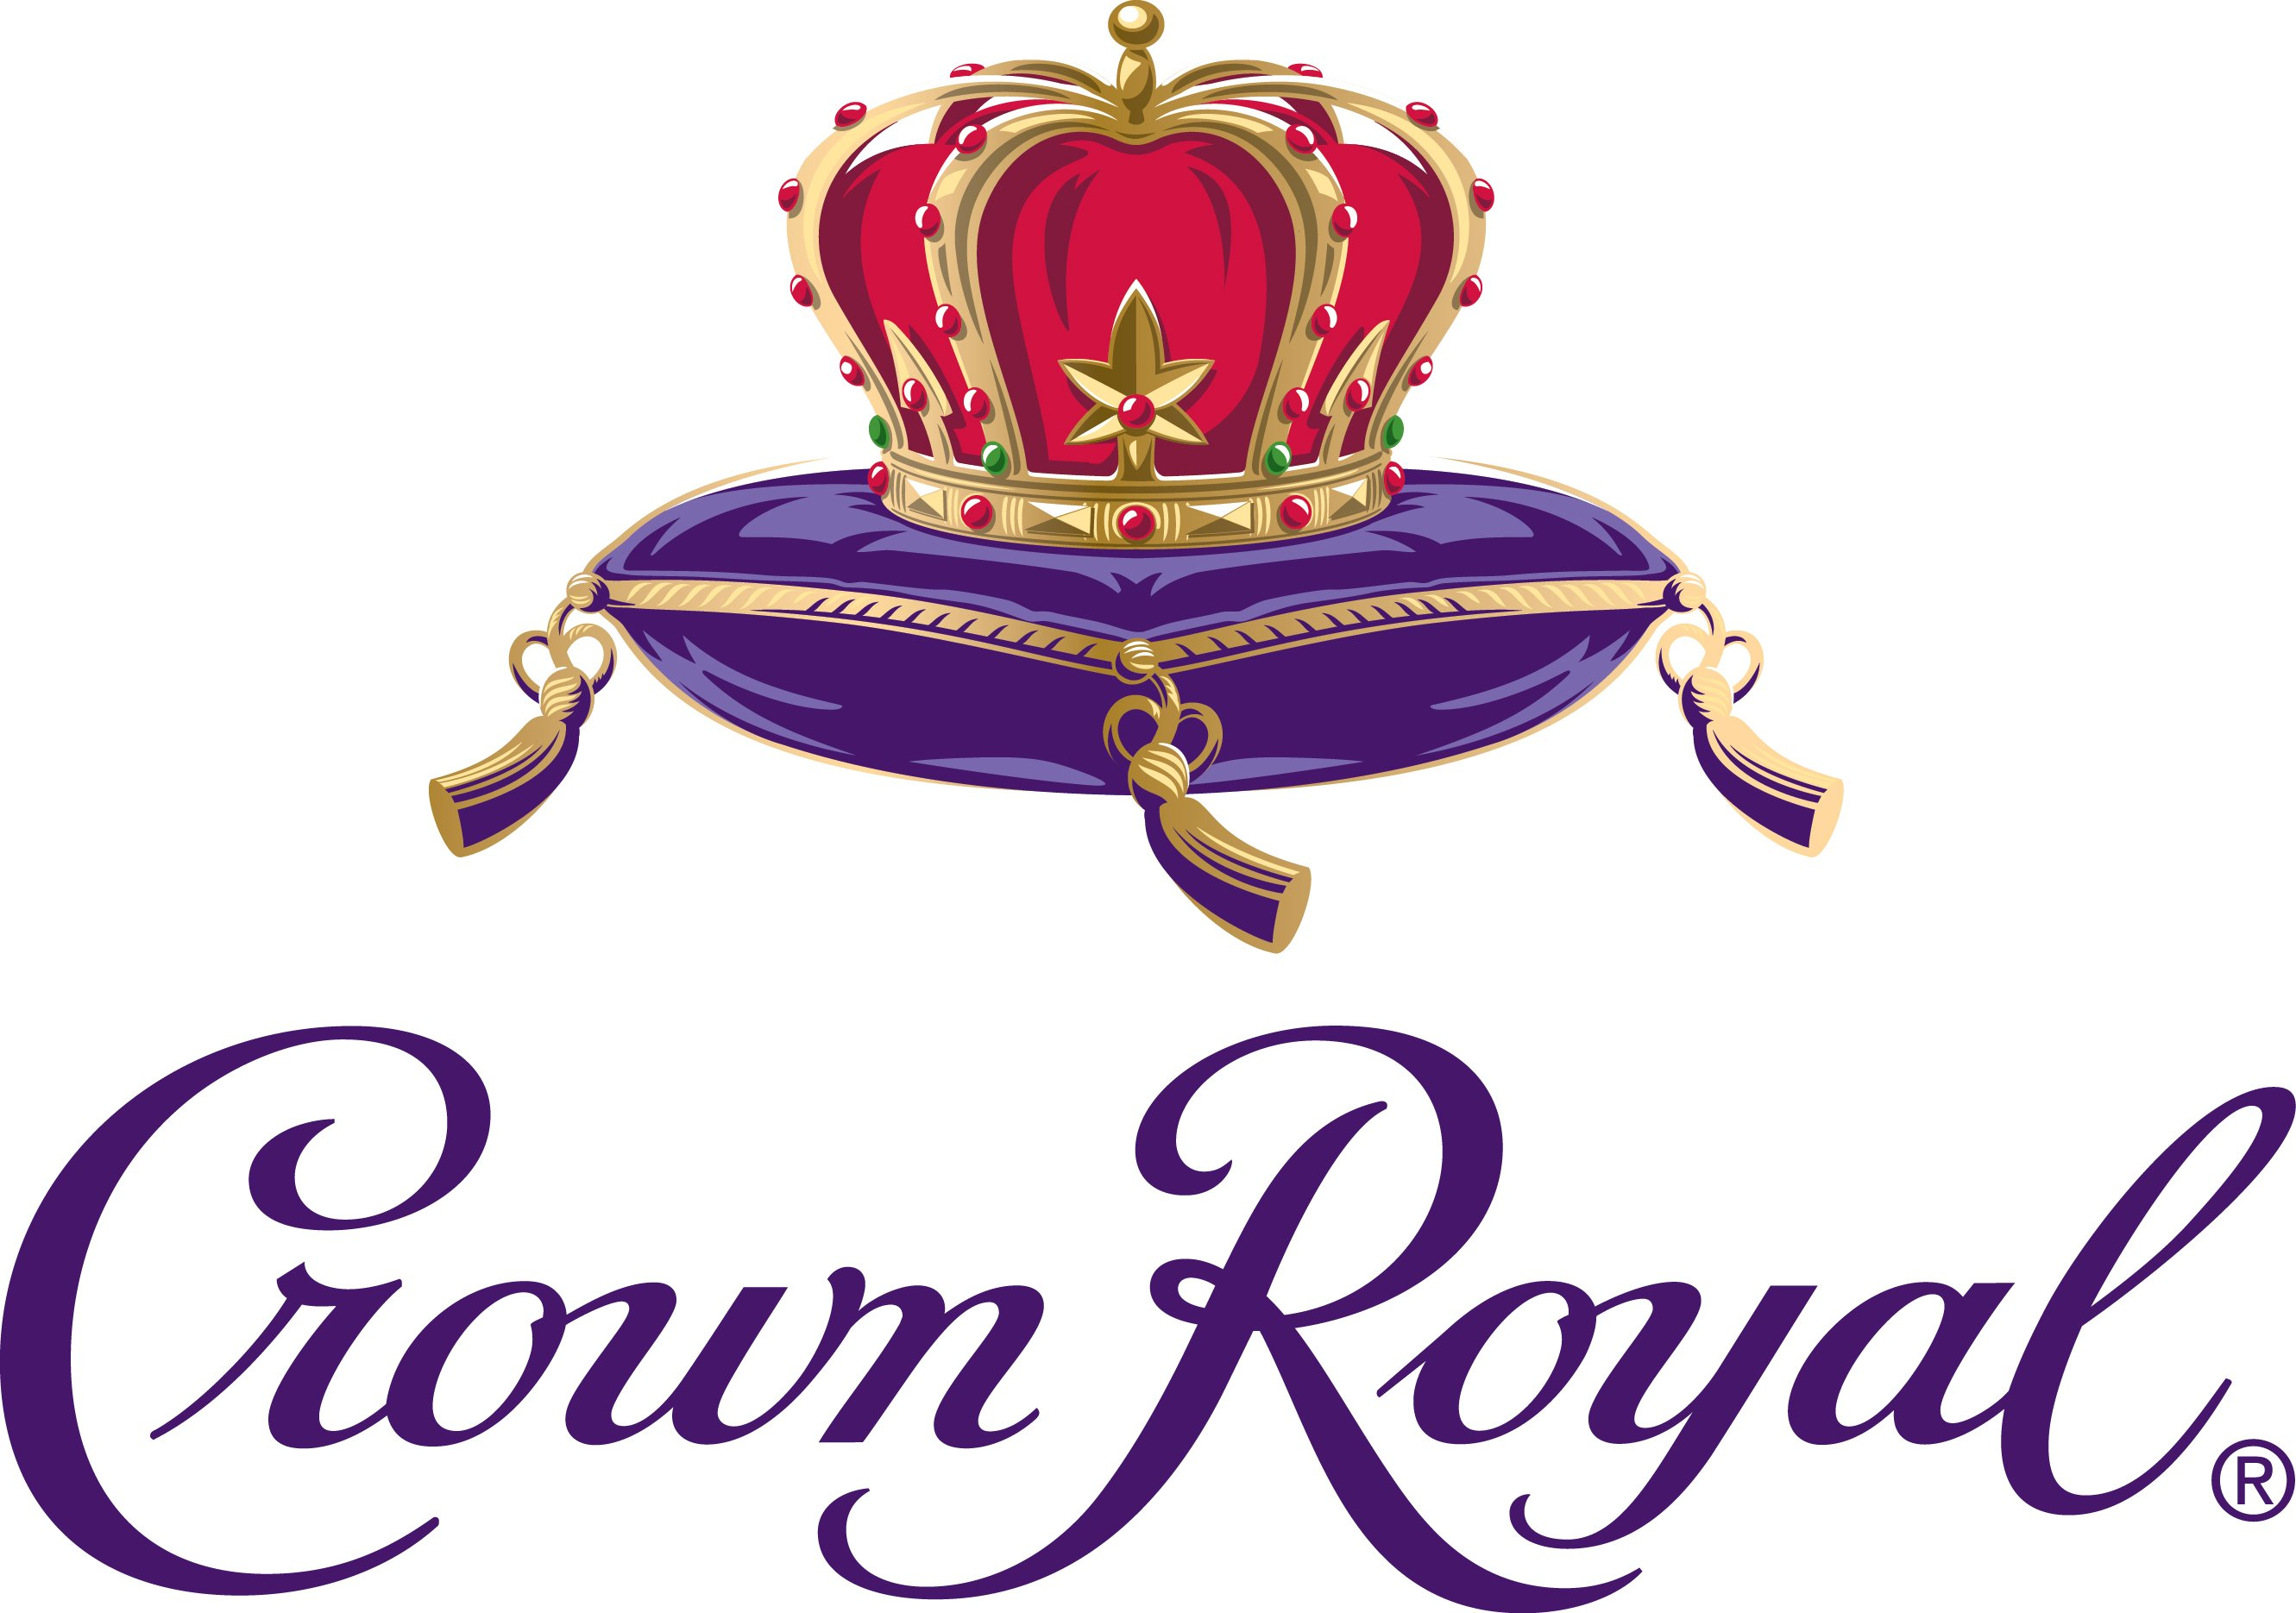 CROWN ROYAL canadian whisky alcohol wallpaper 2661x1870 503853 2661x1870